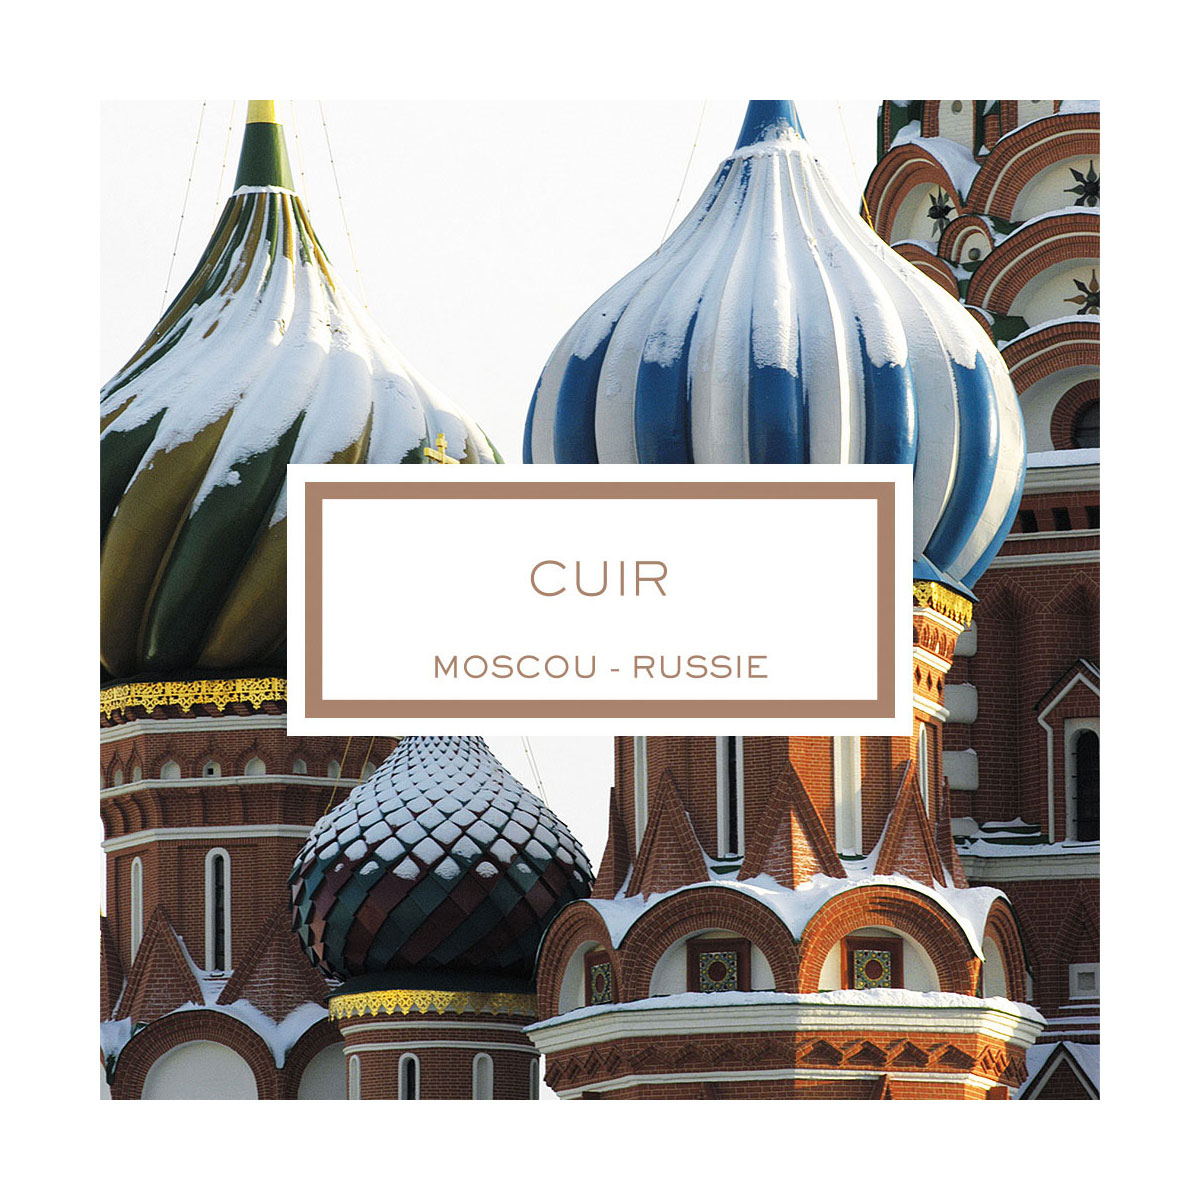 Lalique Cuir Moscou Scented Candle, Leather Moscow-Russia